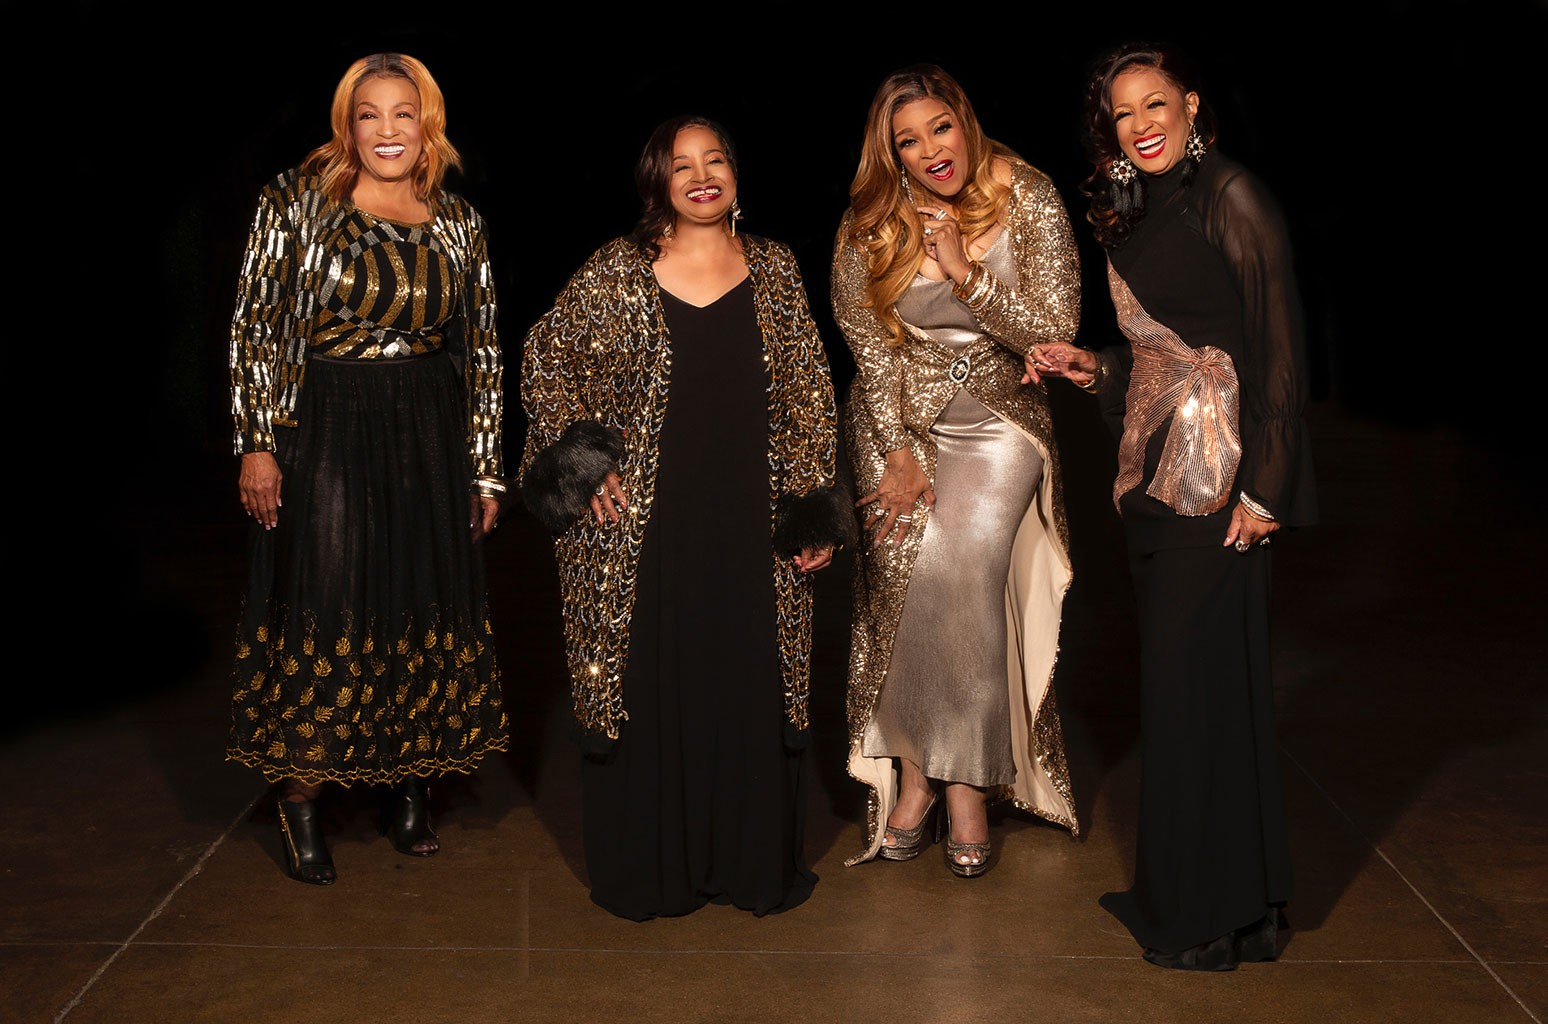 The Clark Sisters, Tramaine Hawkins to Receive Special Honors at 2021 Stellar Gospel Music Awards